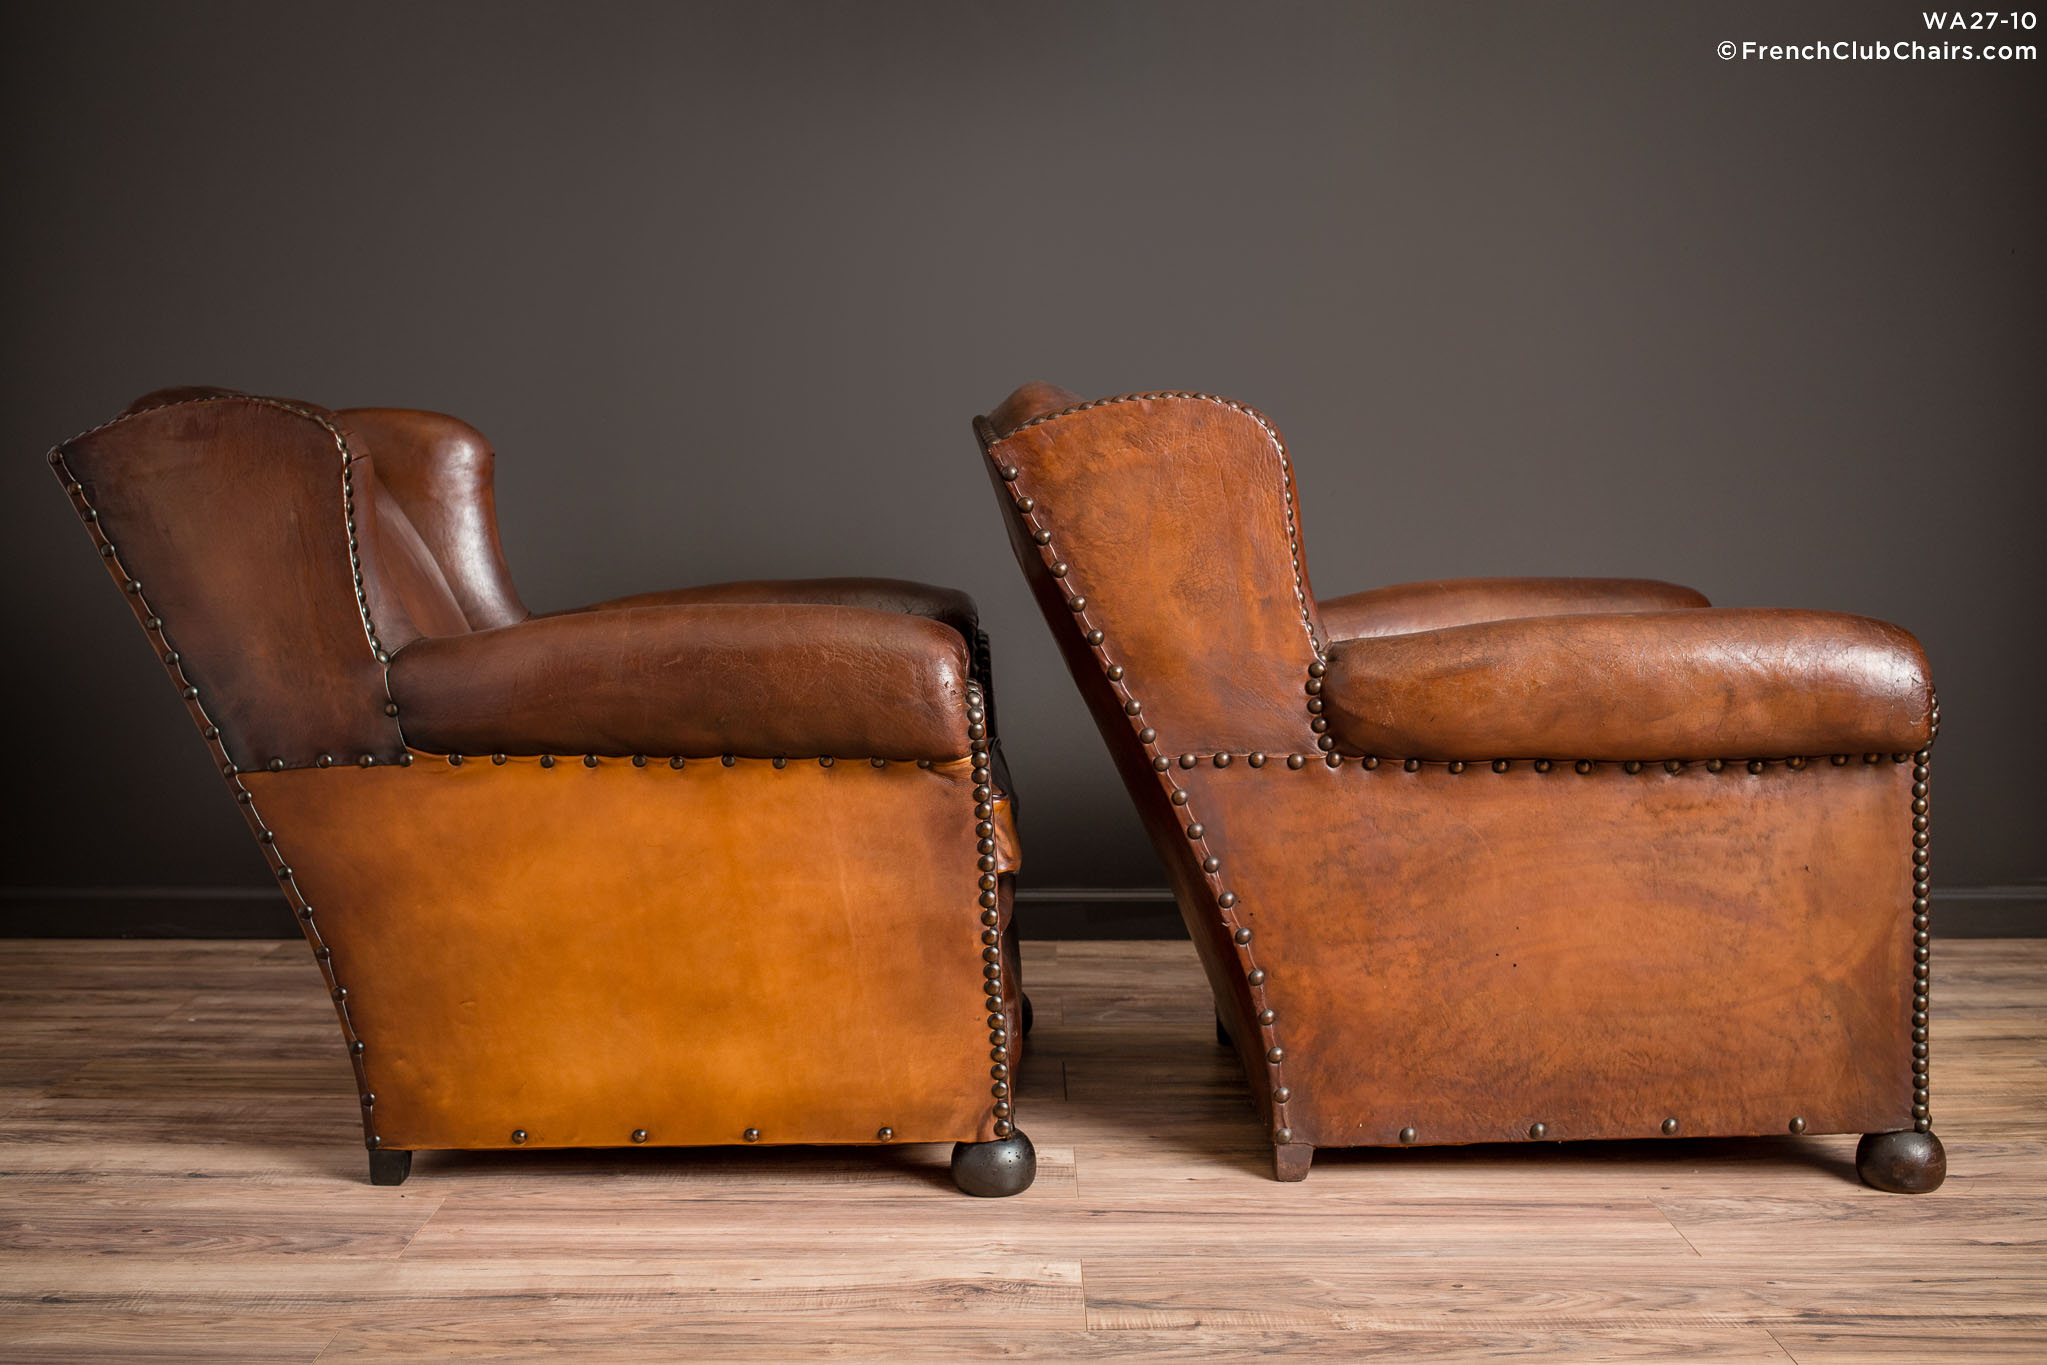 WA_27-10_The_Kings_Wingback_Pair_R_3RT-v01-williams-antiks-leather-french-club-chair-wa_fcccom